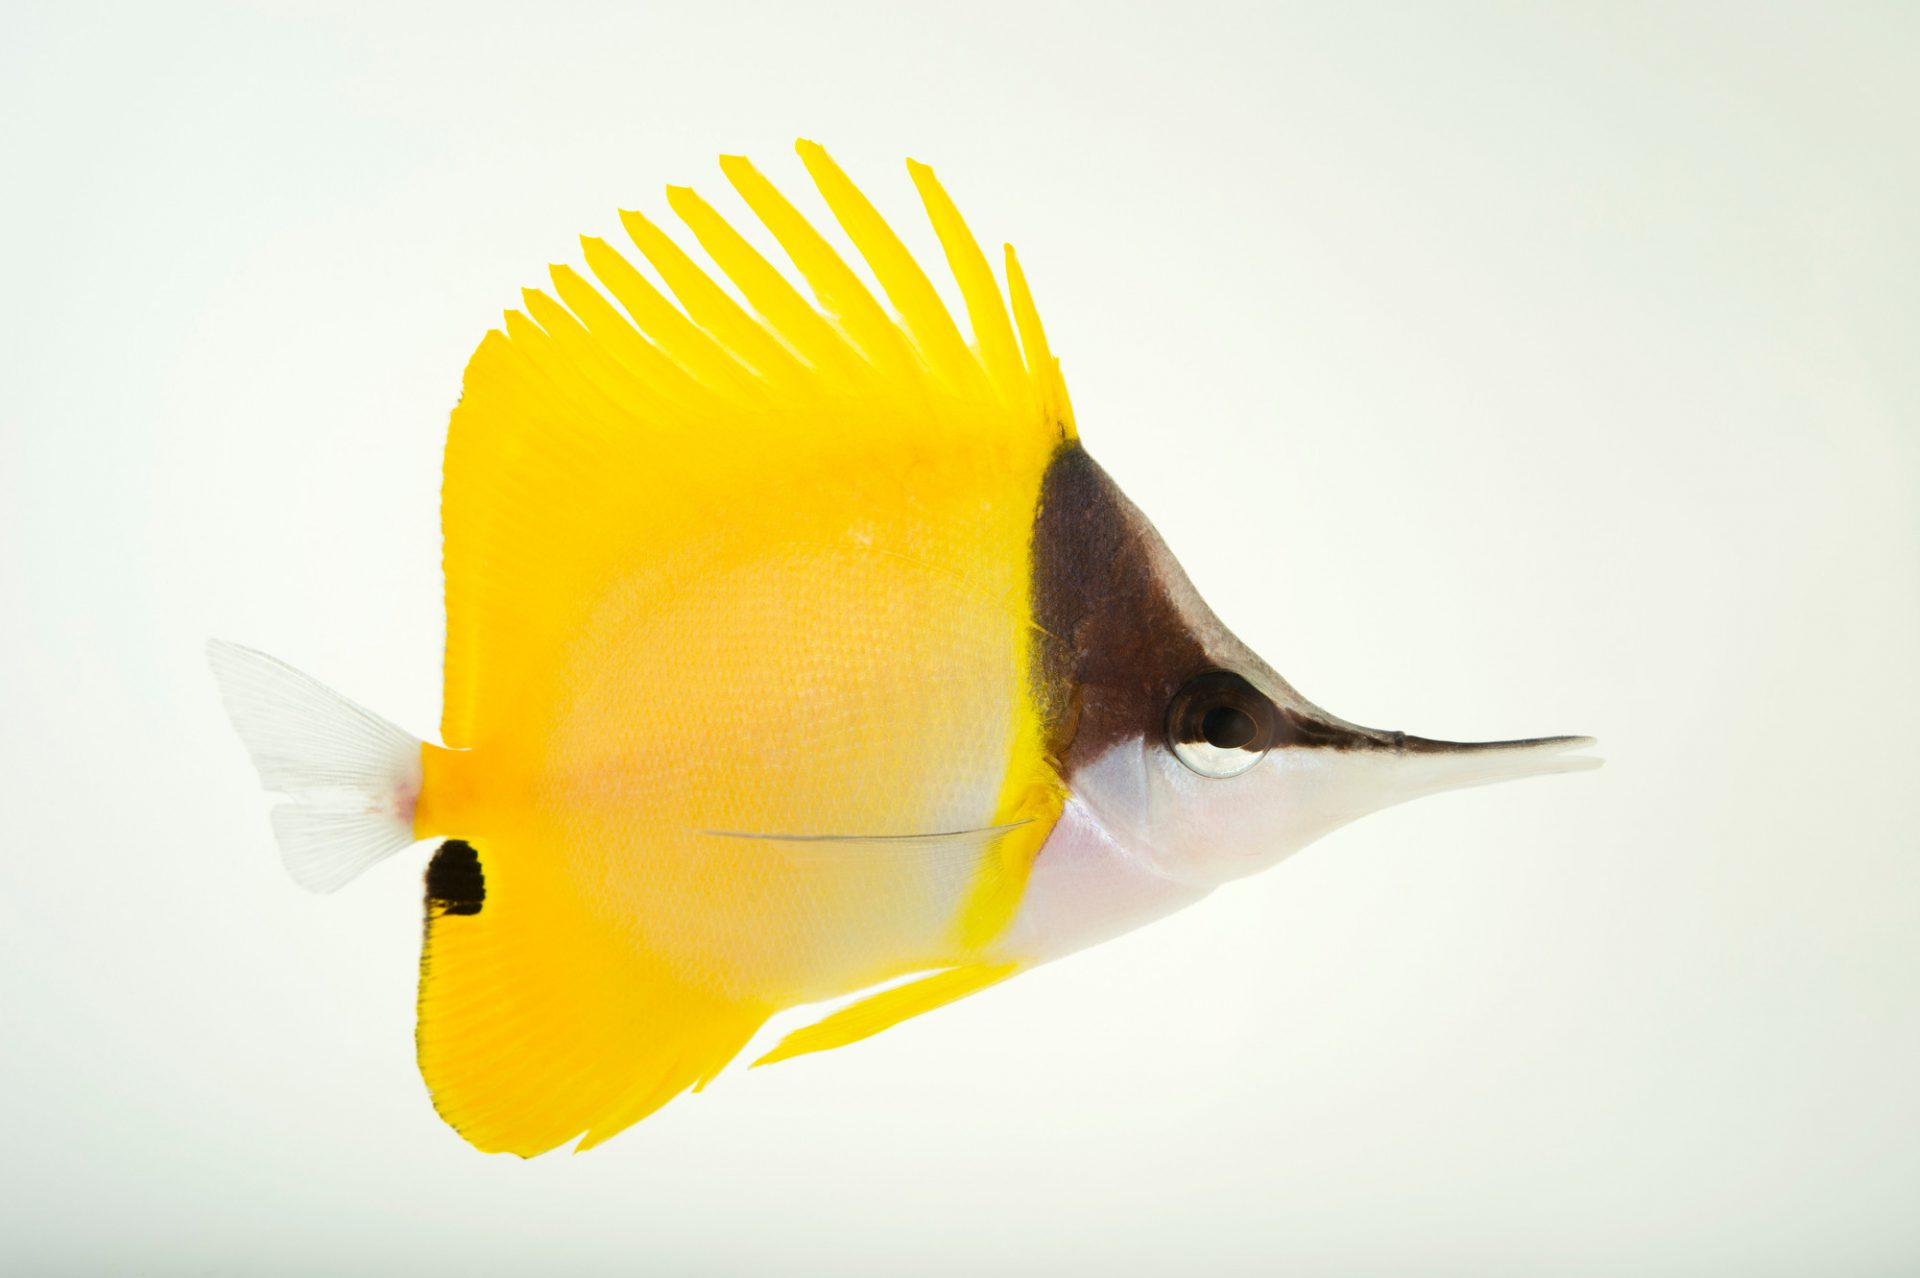 Picture of yellow longnose butterflyfish (Forcipiger flavissimus) at Omaha's Henry Doorly Zoo and Aquarium.